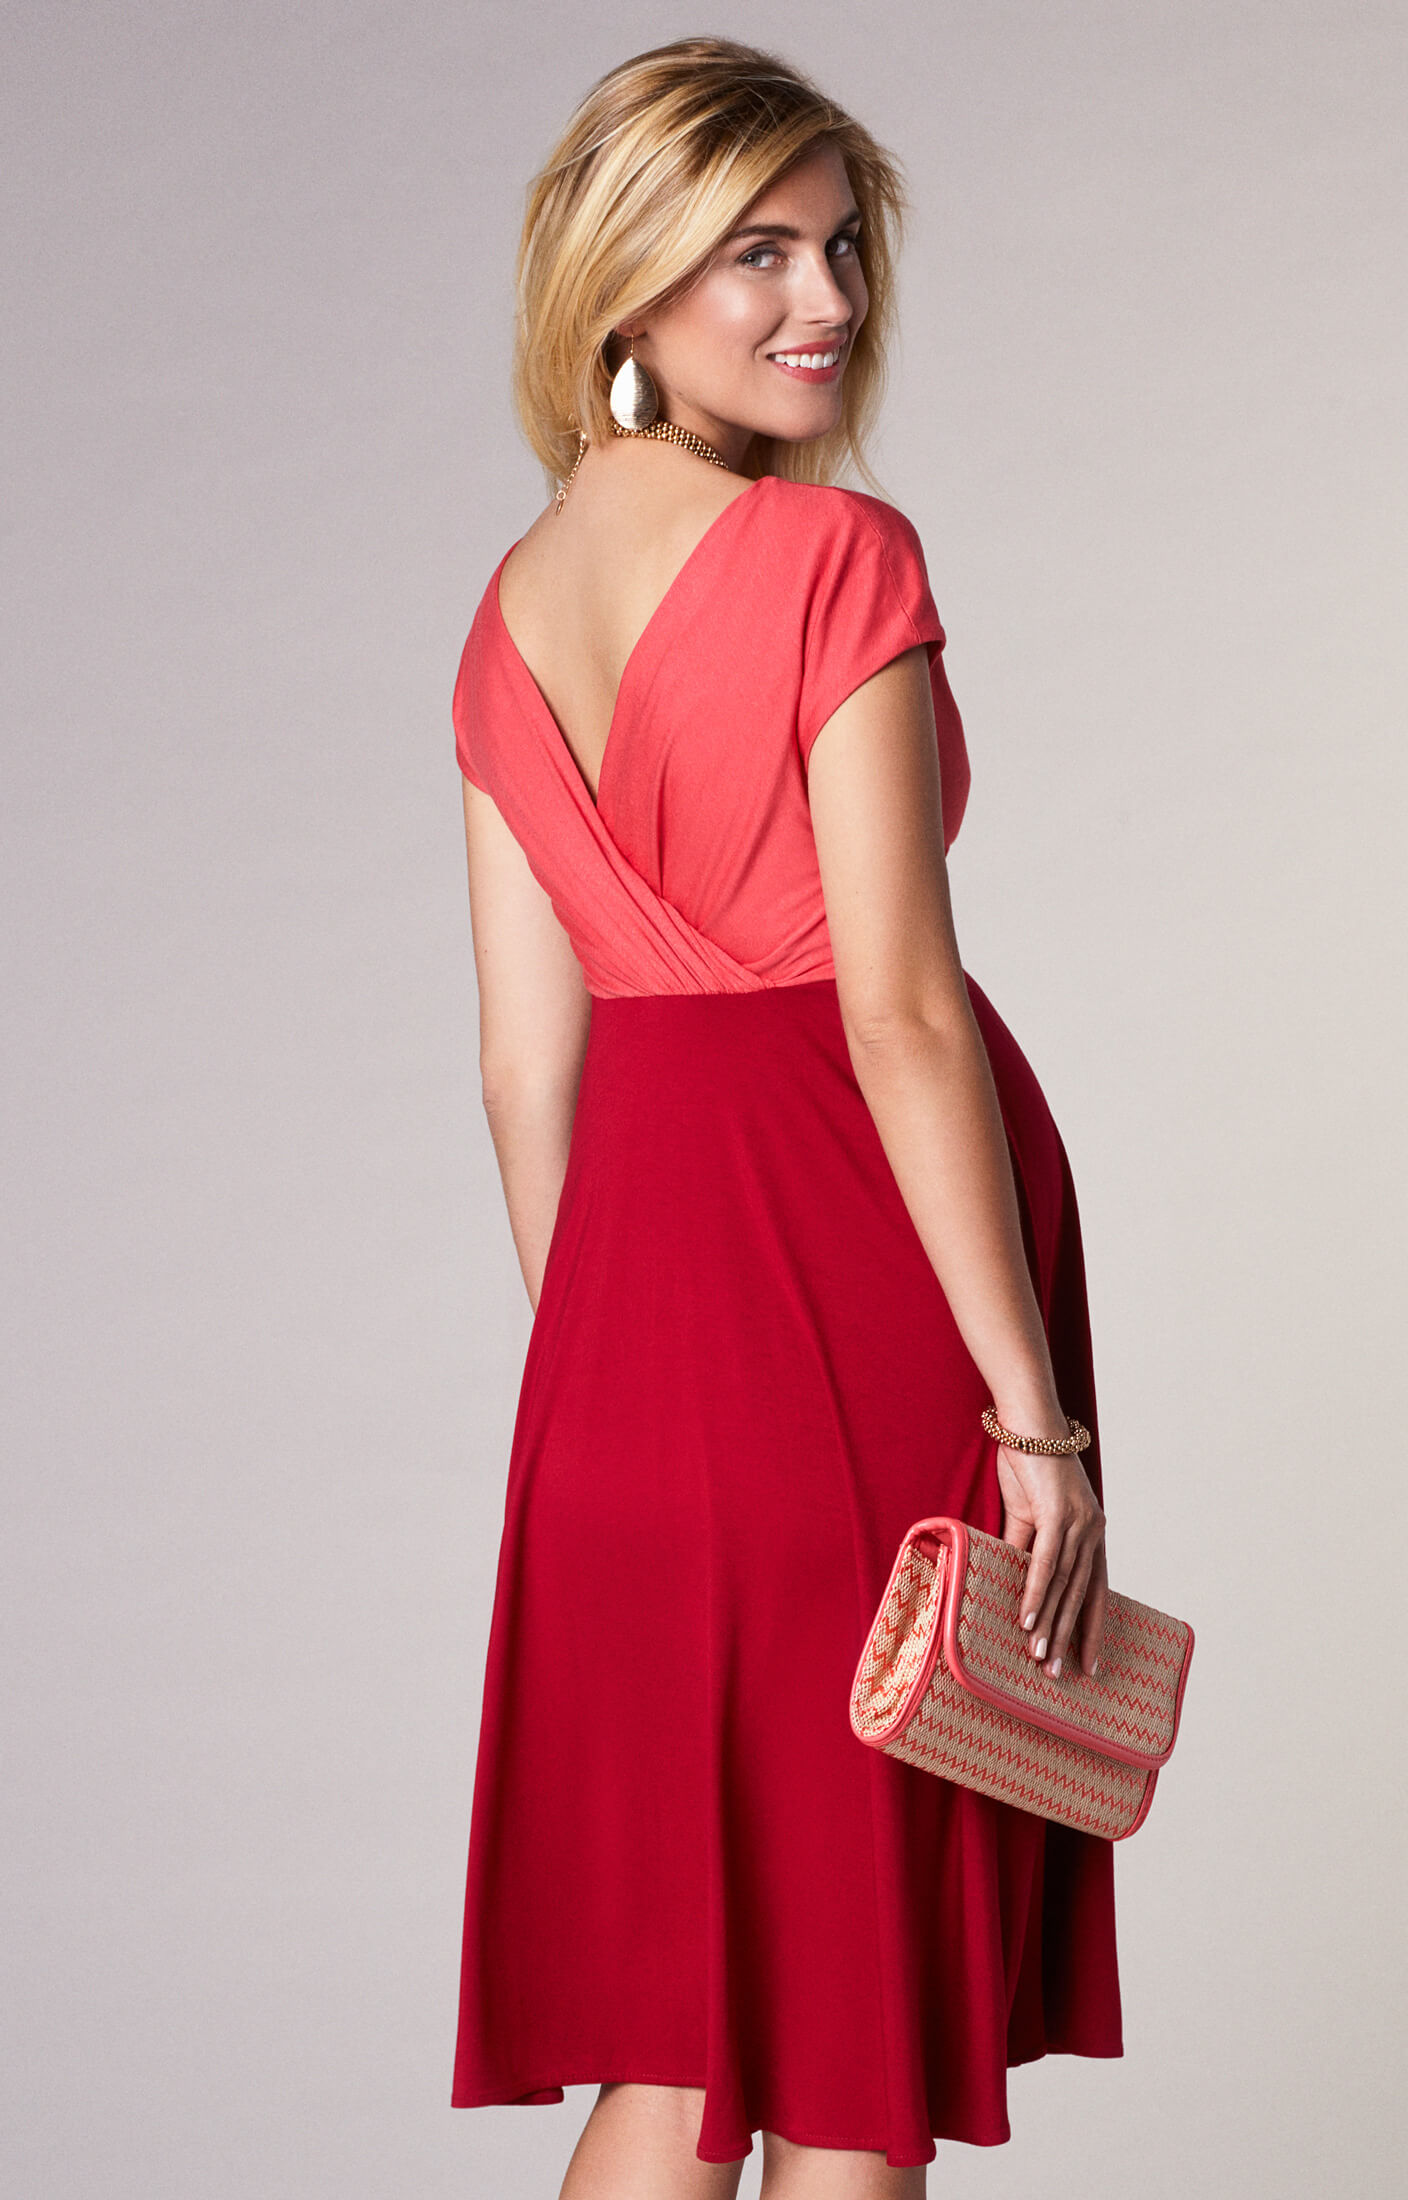 Alessandra Maternity Dress Short Coral Red Maternity Wedding Dresses Evening Wear And Party Clothes By Tiffany Rose Us